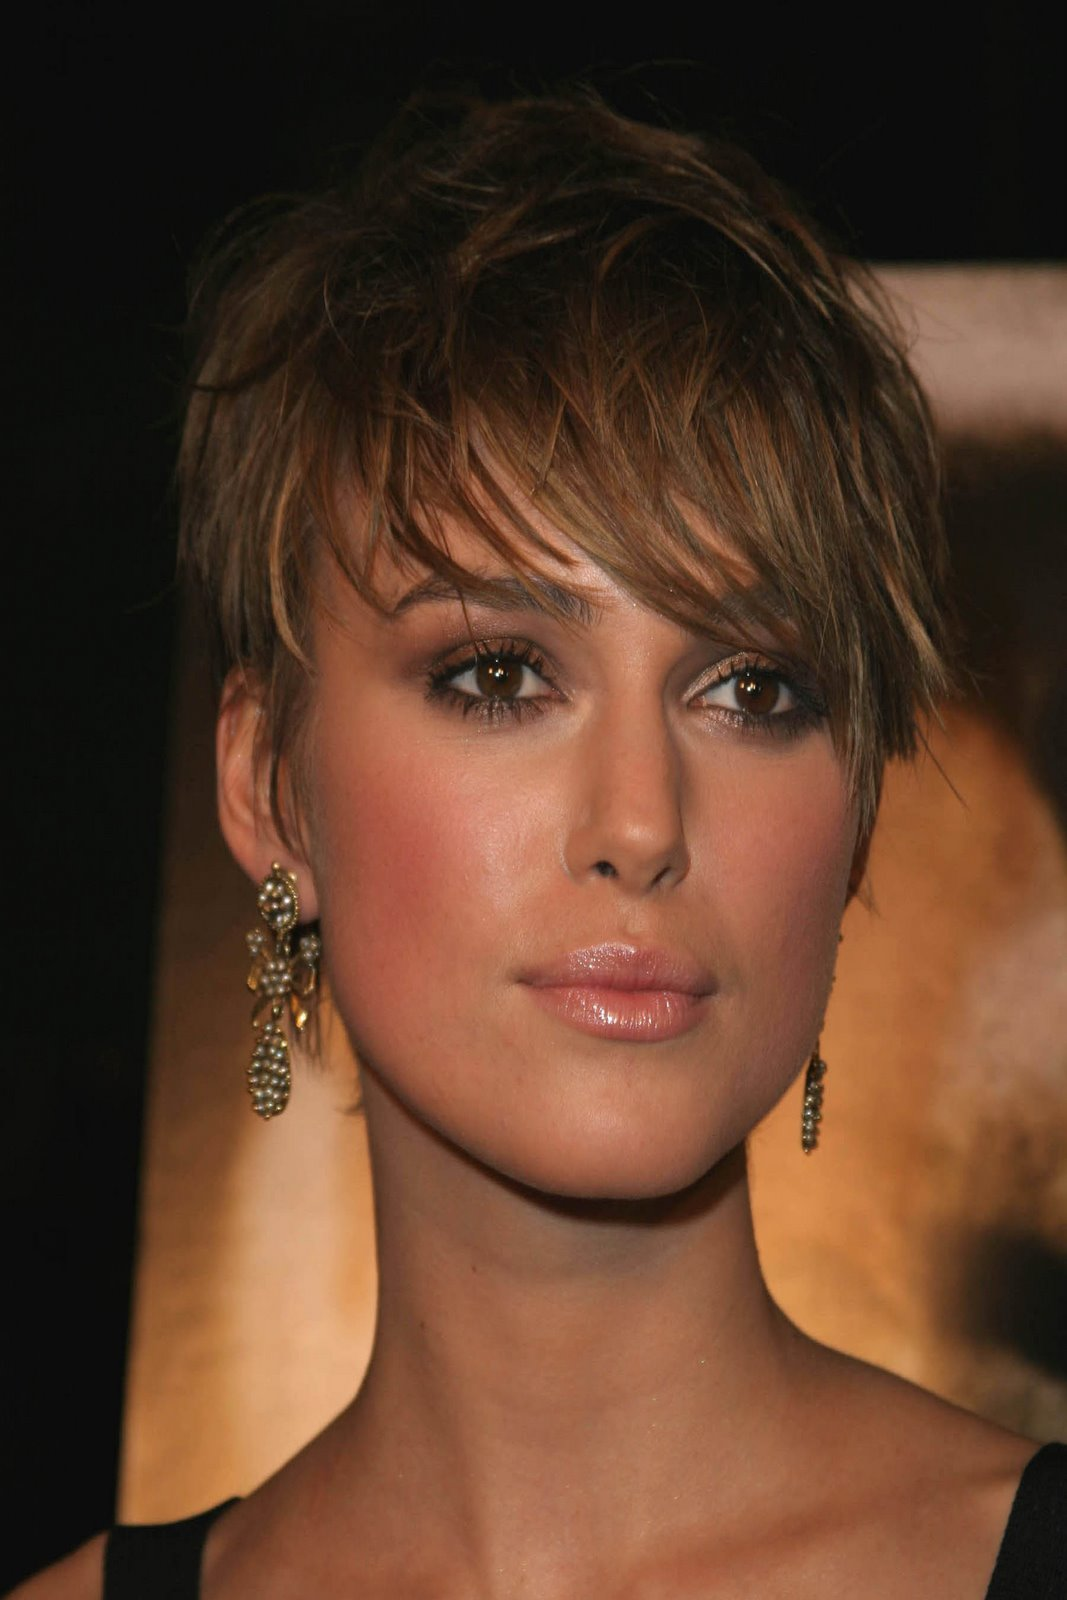 Short Hairstyles Fashion 2010: 15 New Pictures of Short Hair Styles -  YusraBlog.com